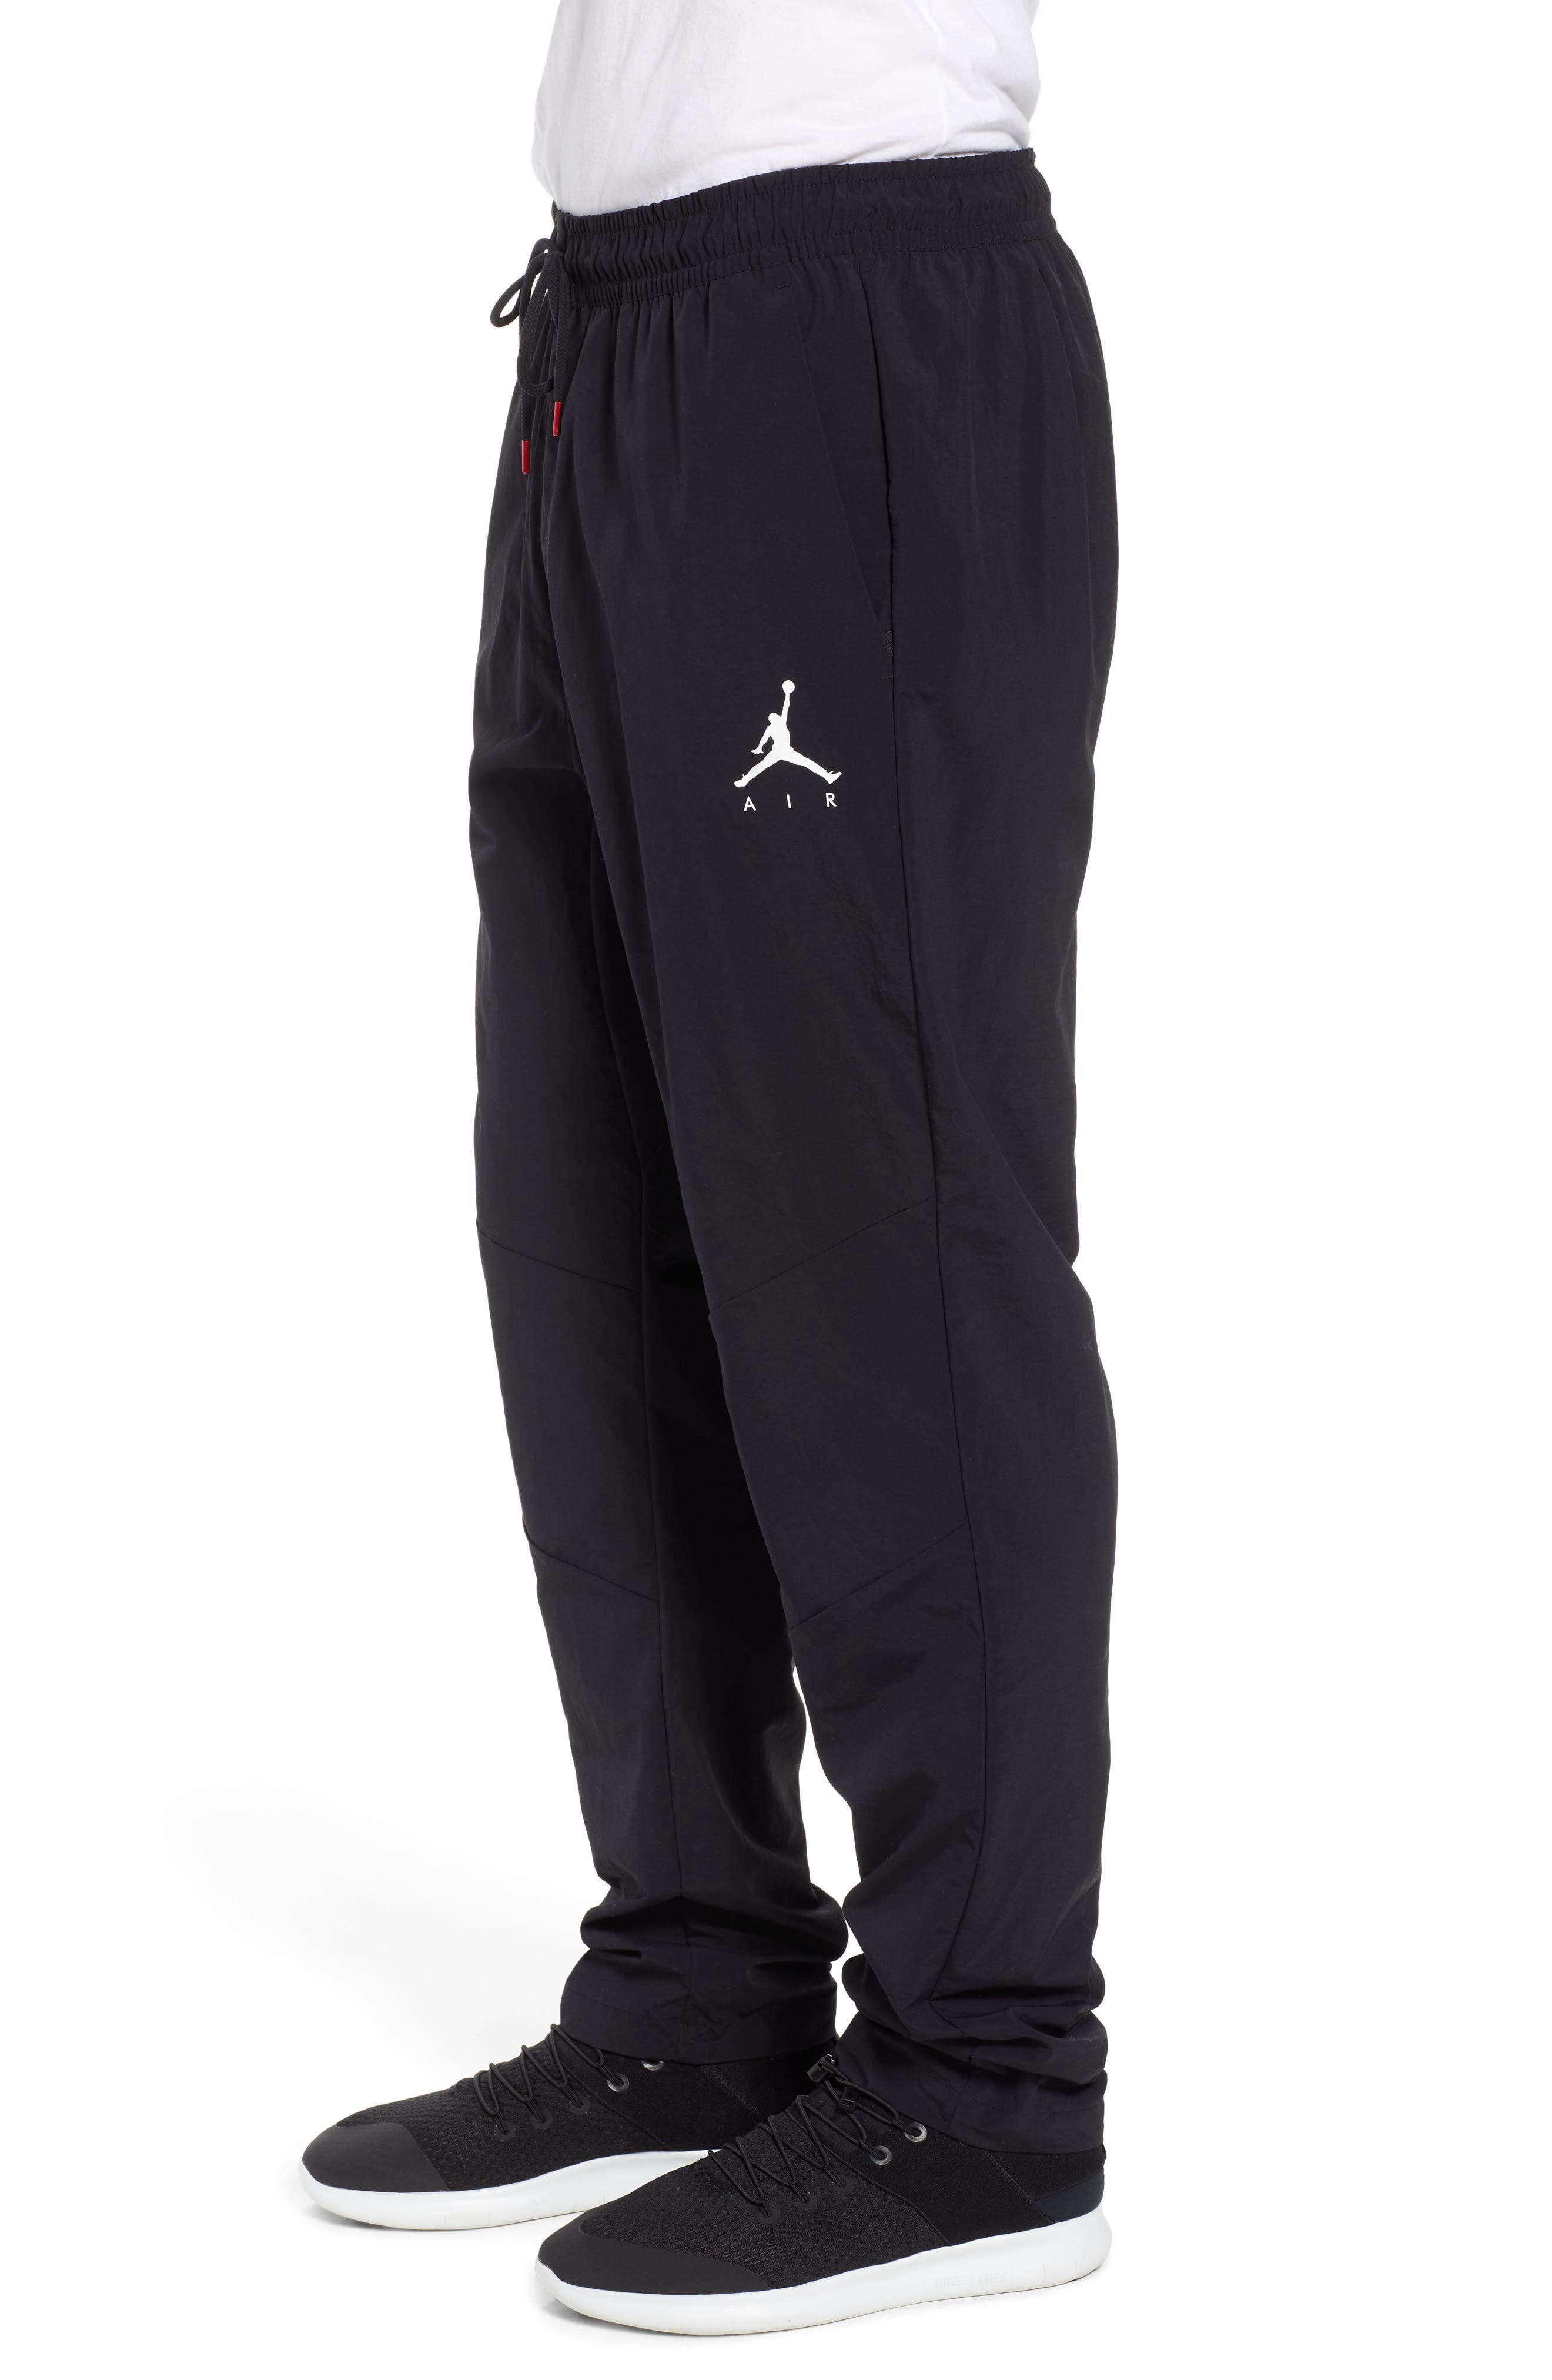 Jordan Jumpman Woven Pants,                             Alternate thumbnail 3, color,                             BLACK/ WHITE